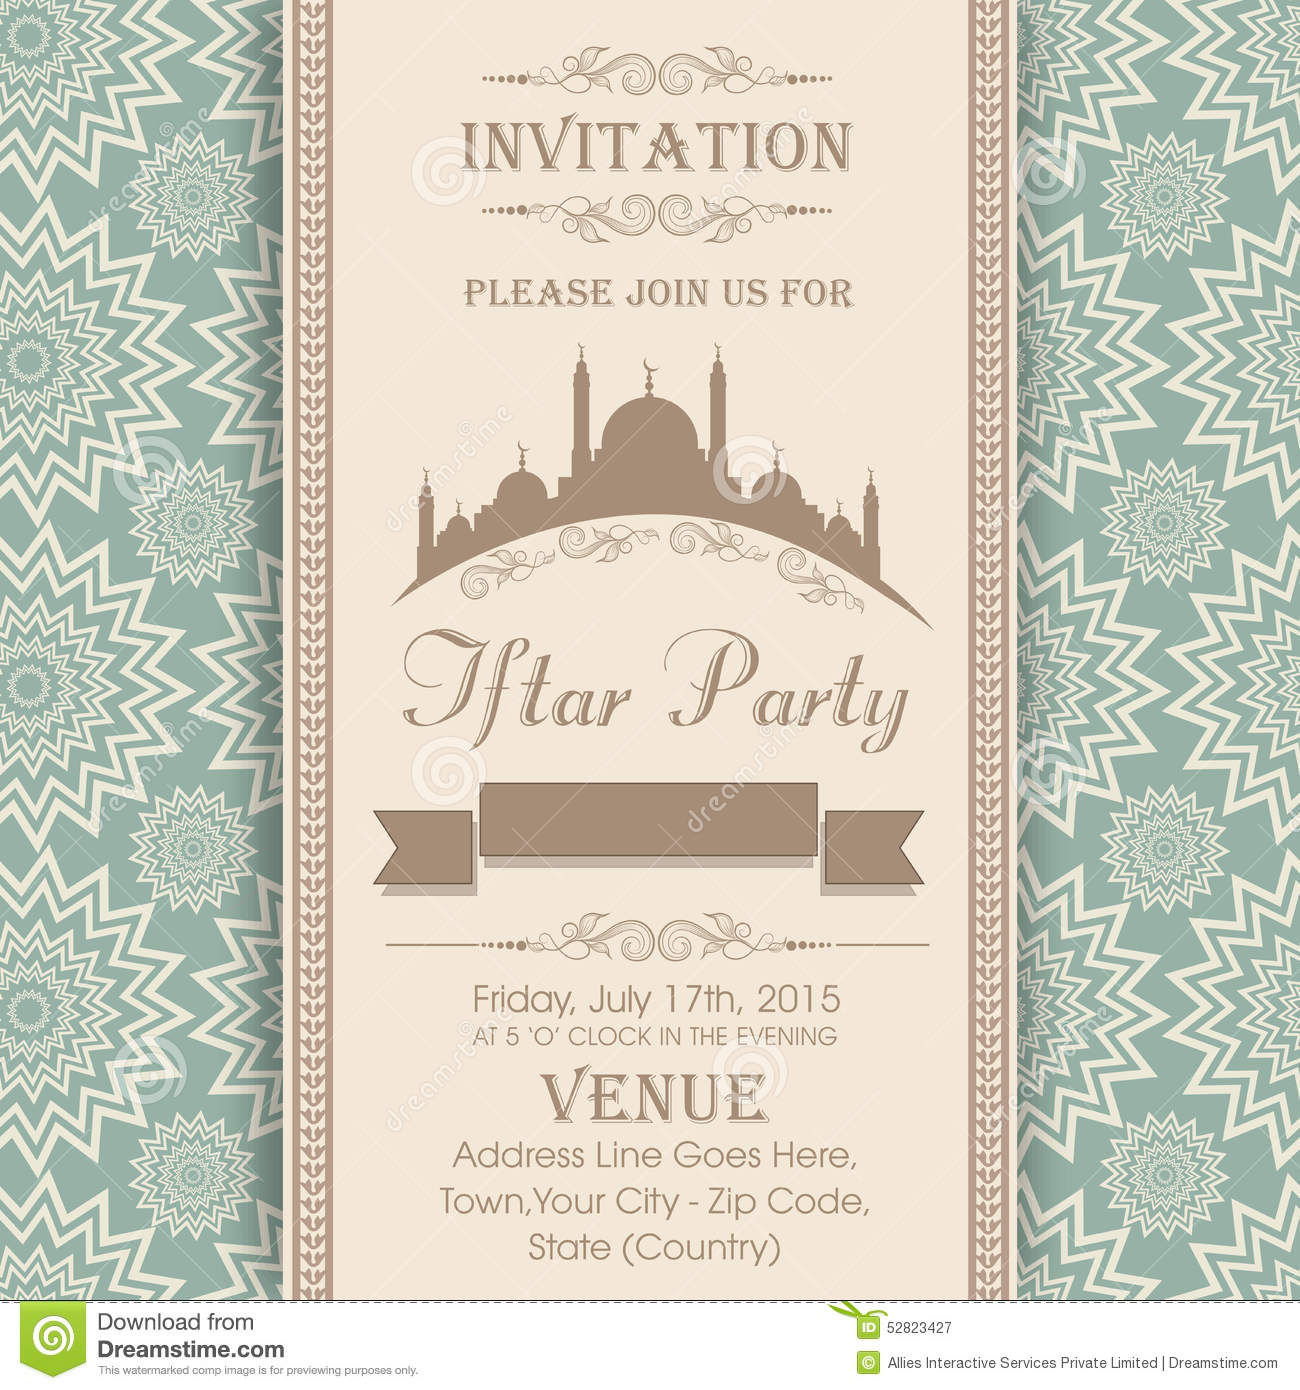 Invitation Card For Holy Month Ramadan Kareem Iftar Party